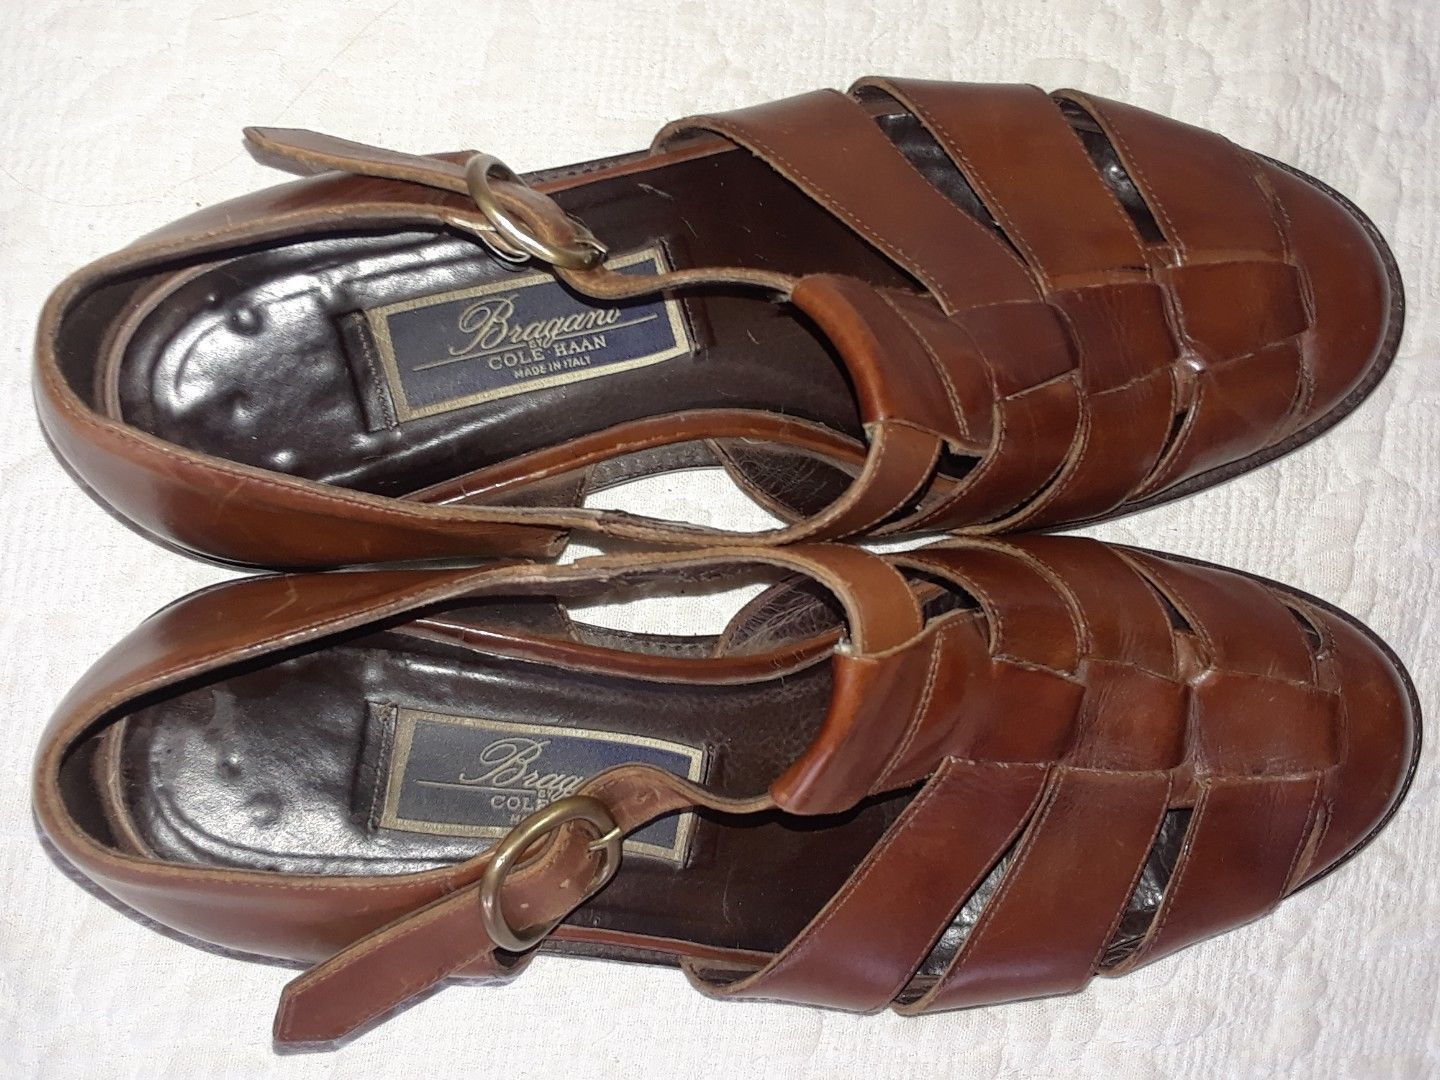 c4bec0f76929 Mens Bragano Shoes by Cole Hann Fisherman Dress Sandals Brown Leather Size 9